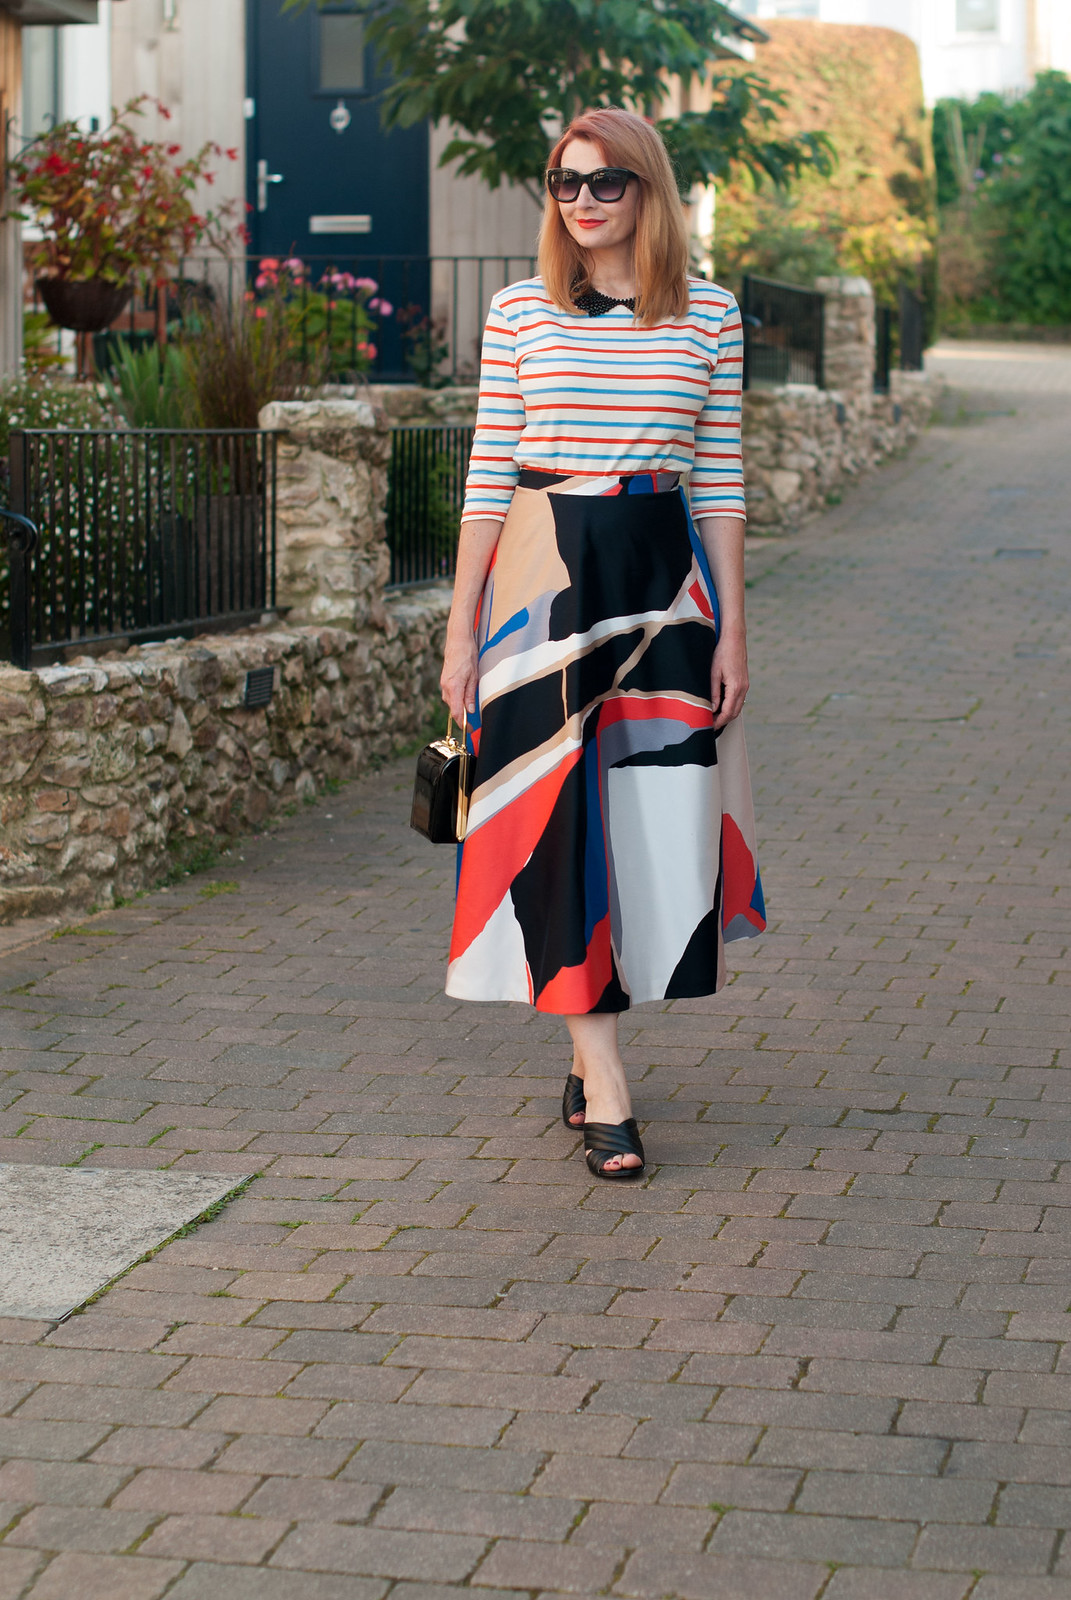 Ways to style a Breton stripe top: Date night/dressed up elegant outfit - with black collar necklace, graphic print full circle midi skirt and mules | Not Dressed As Lamb, over 40 style